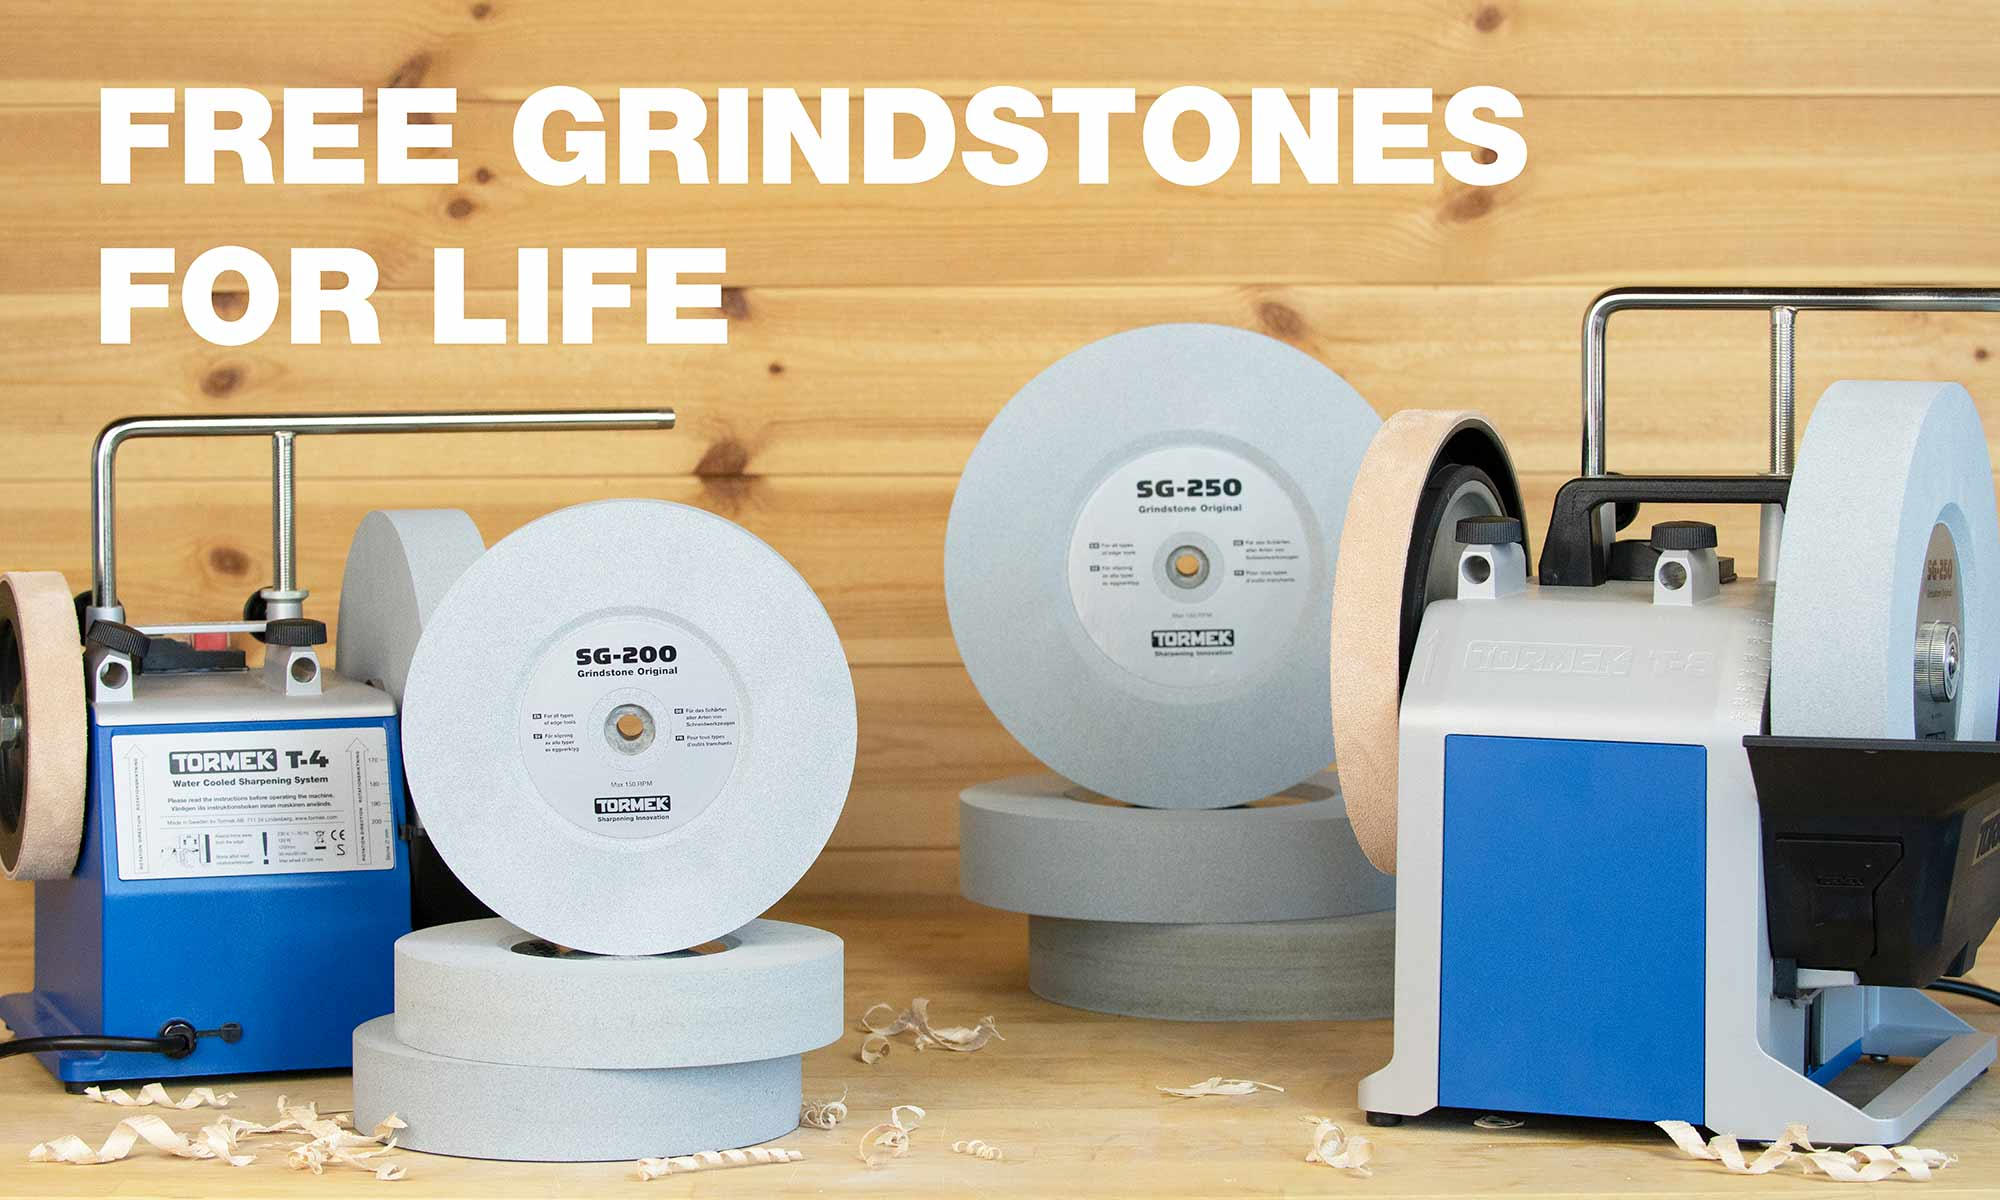 Free Grindstones For Life